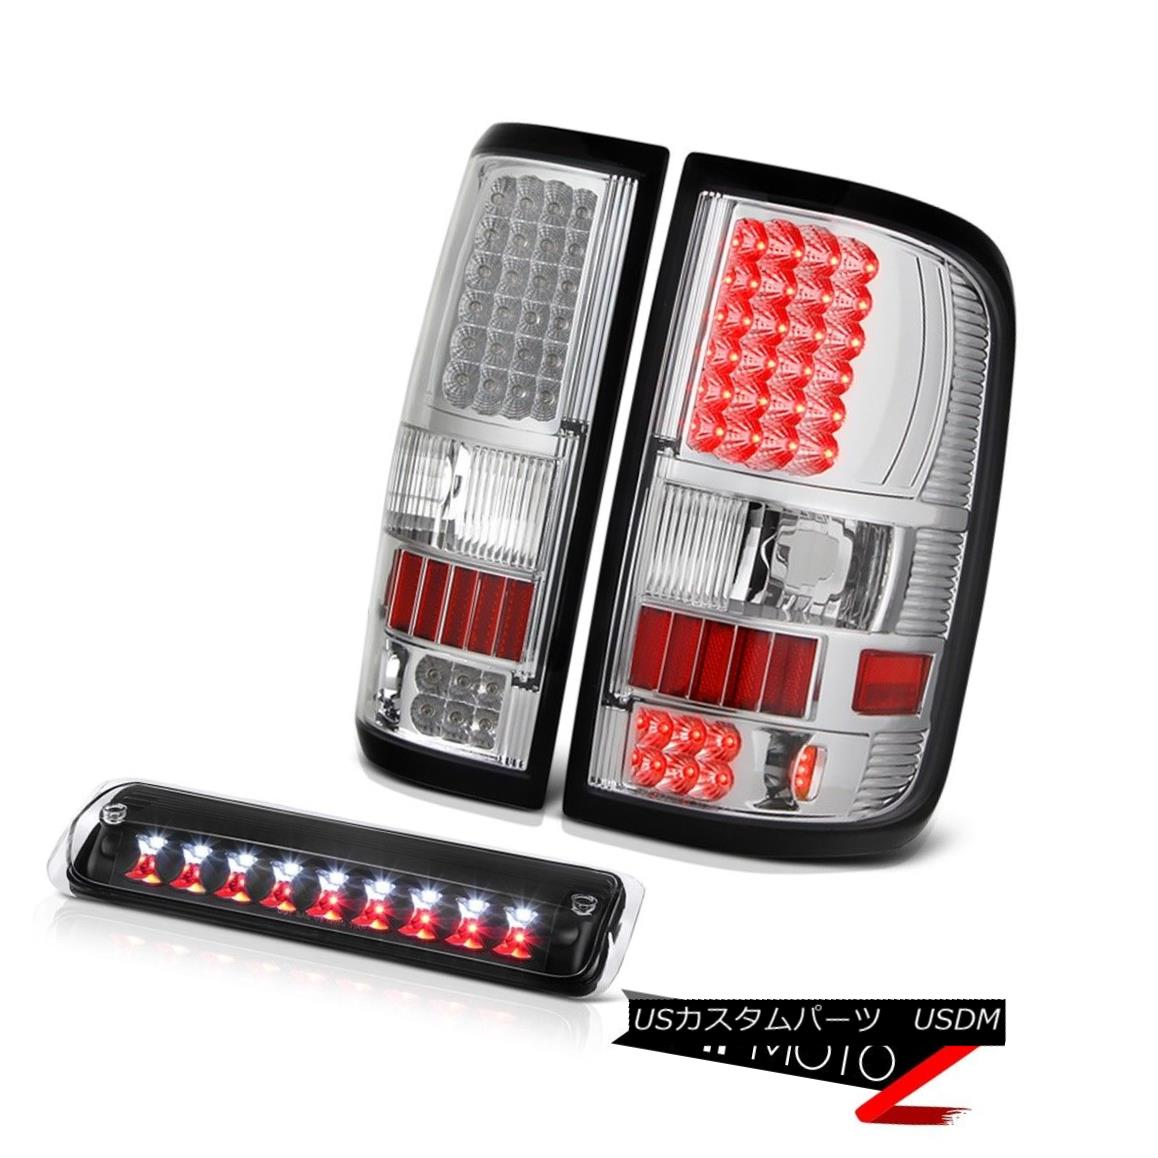 テールライト 04-08 Ford F150 FX4 Third Brake Lamp Euro Clear Parking Lights SMD